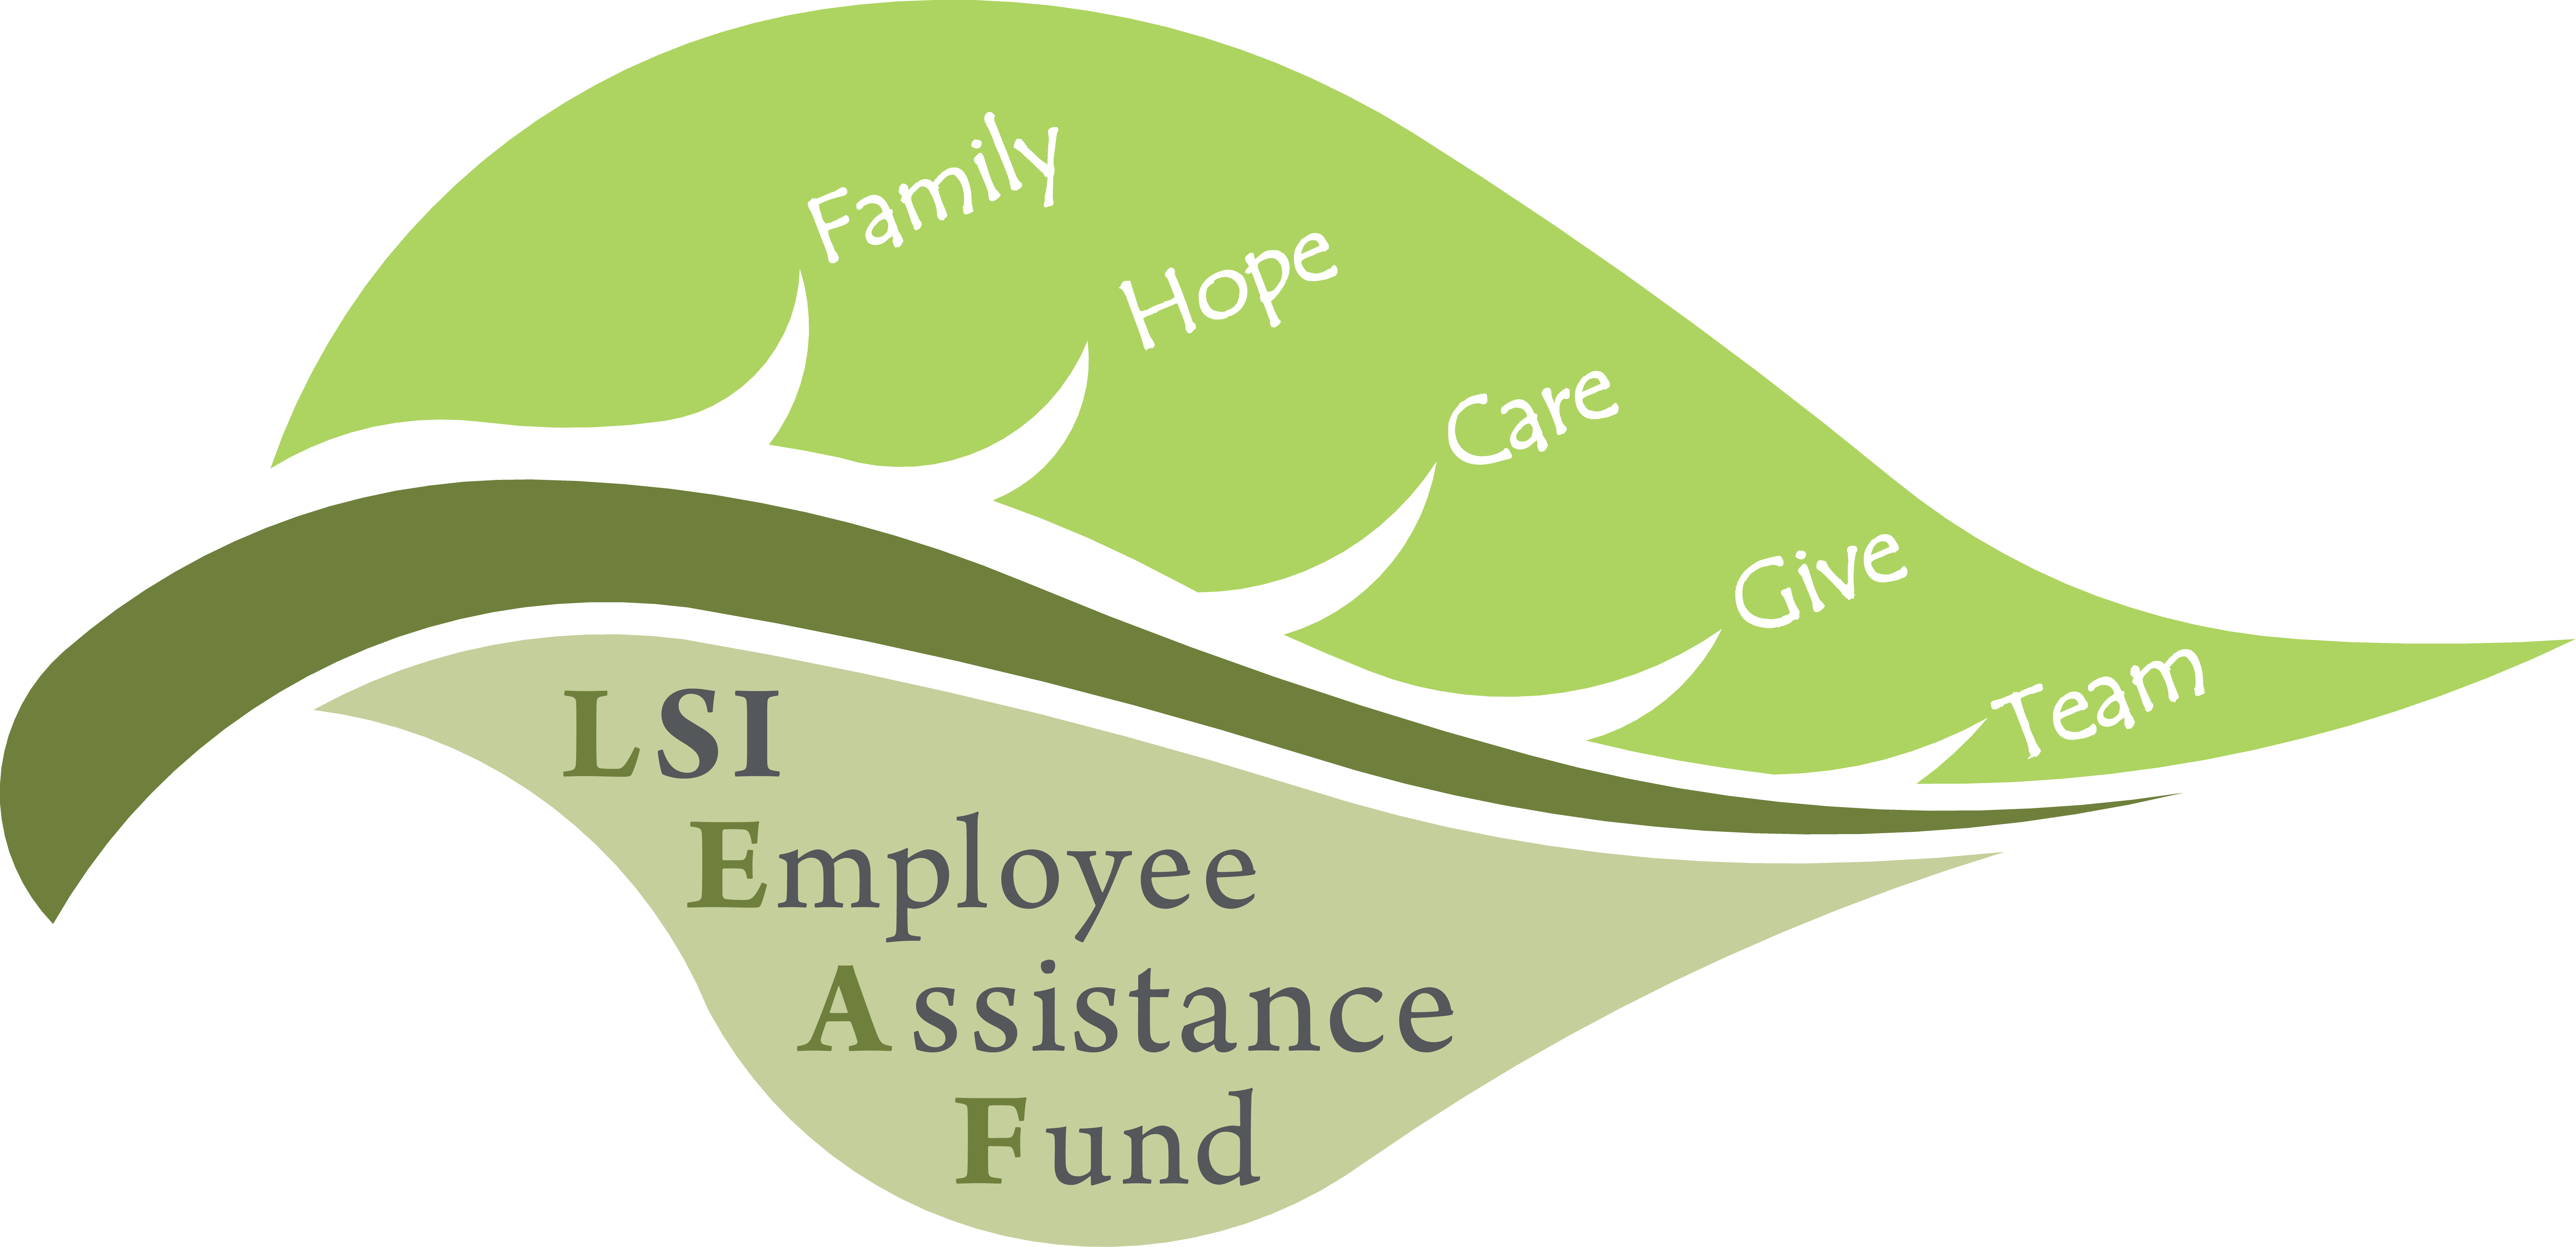 LSI Employee Assistance Fund